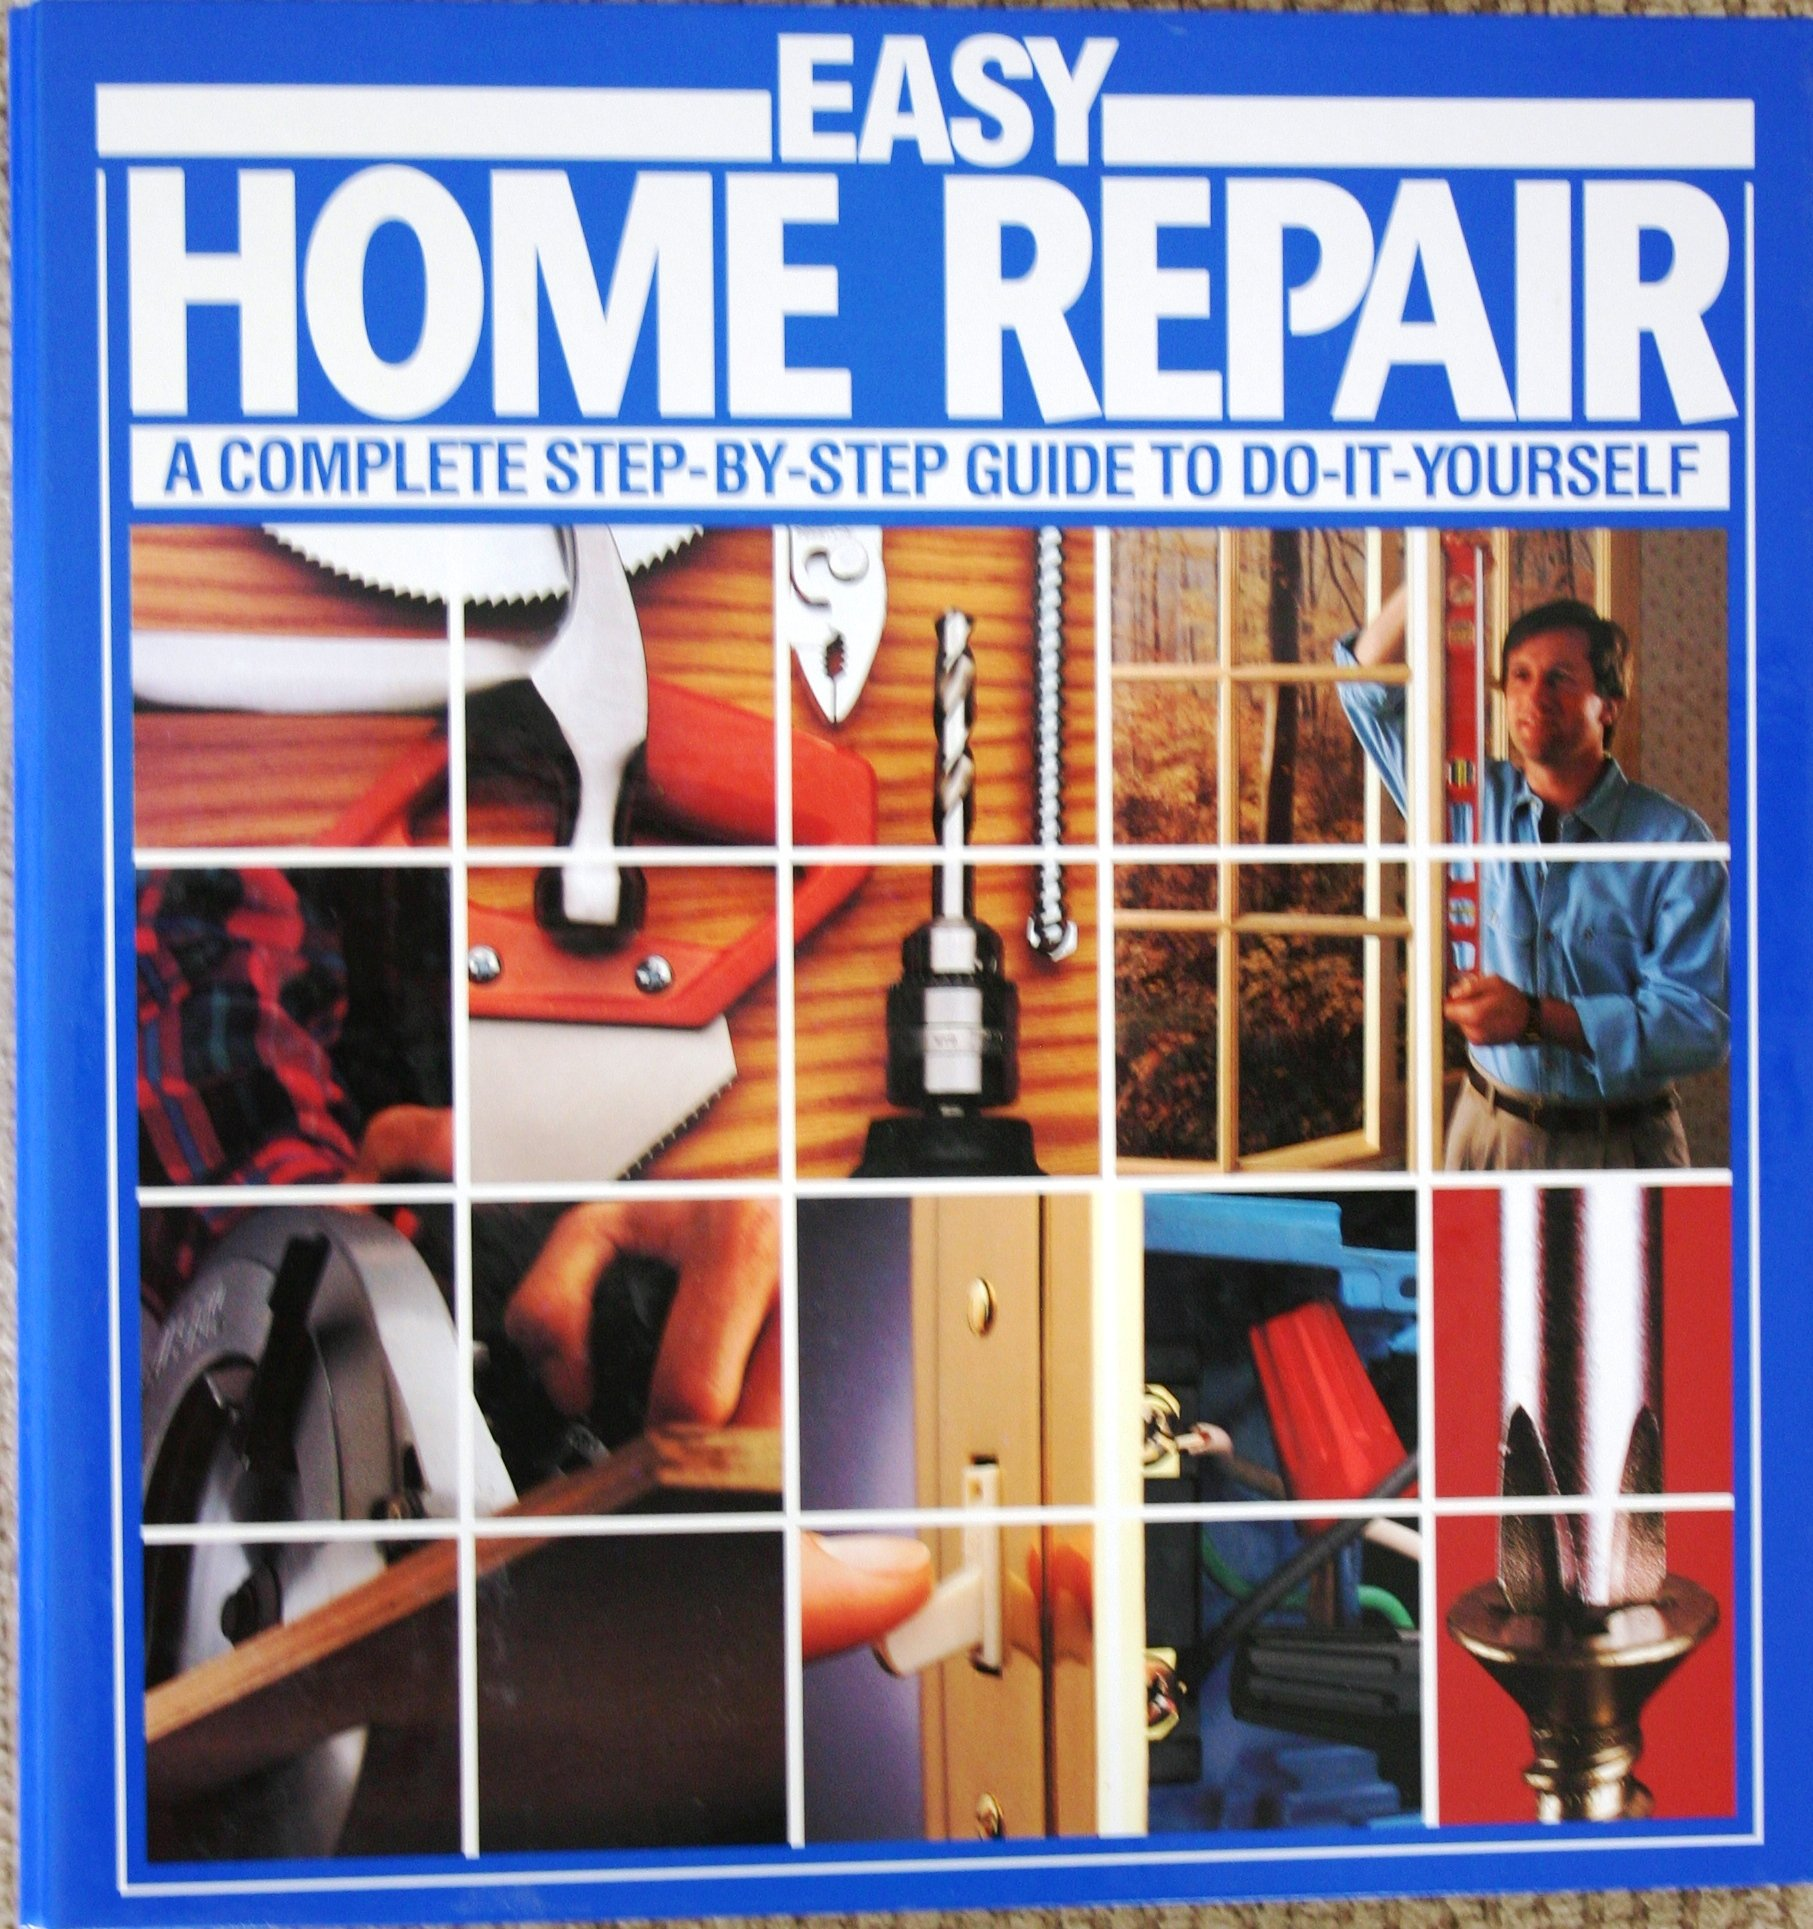 Easy home repair a complete step by step guide to do it yourself easy home repair a complete step by step guide to do it yourself bob anderson amazon books solutioingenieria Gallery